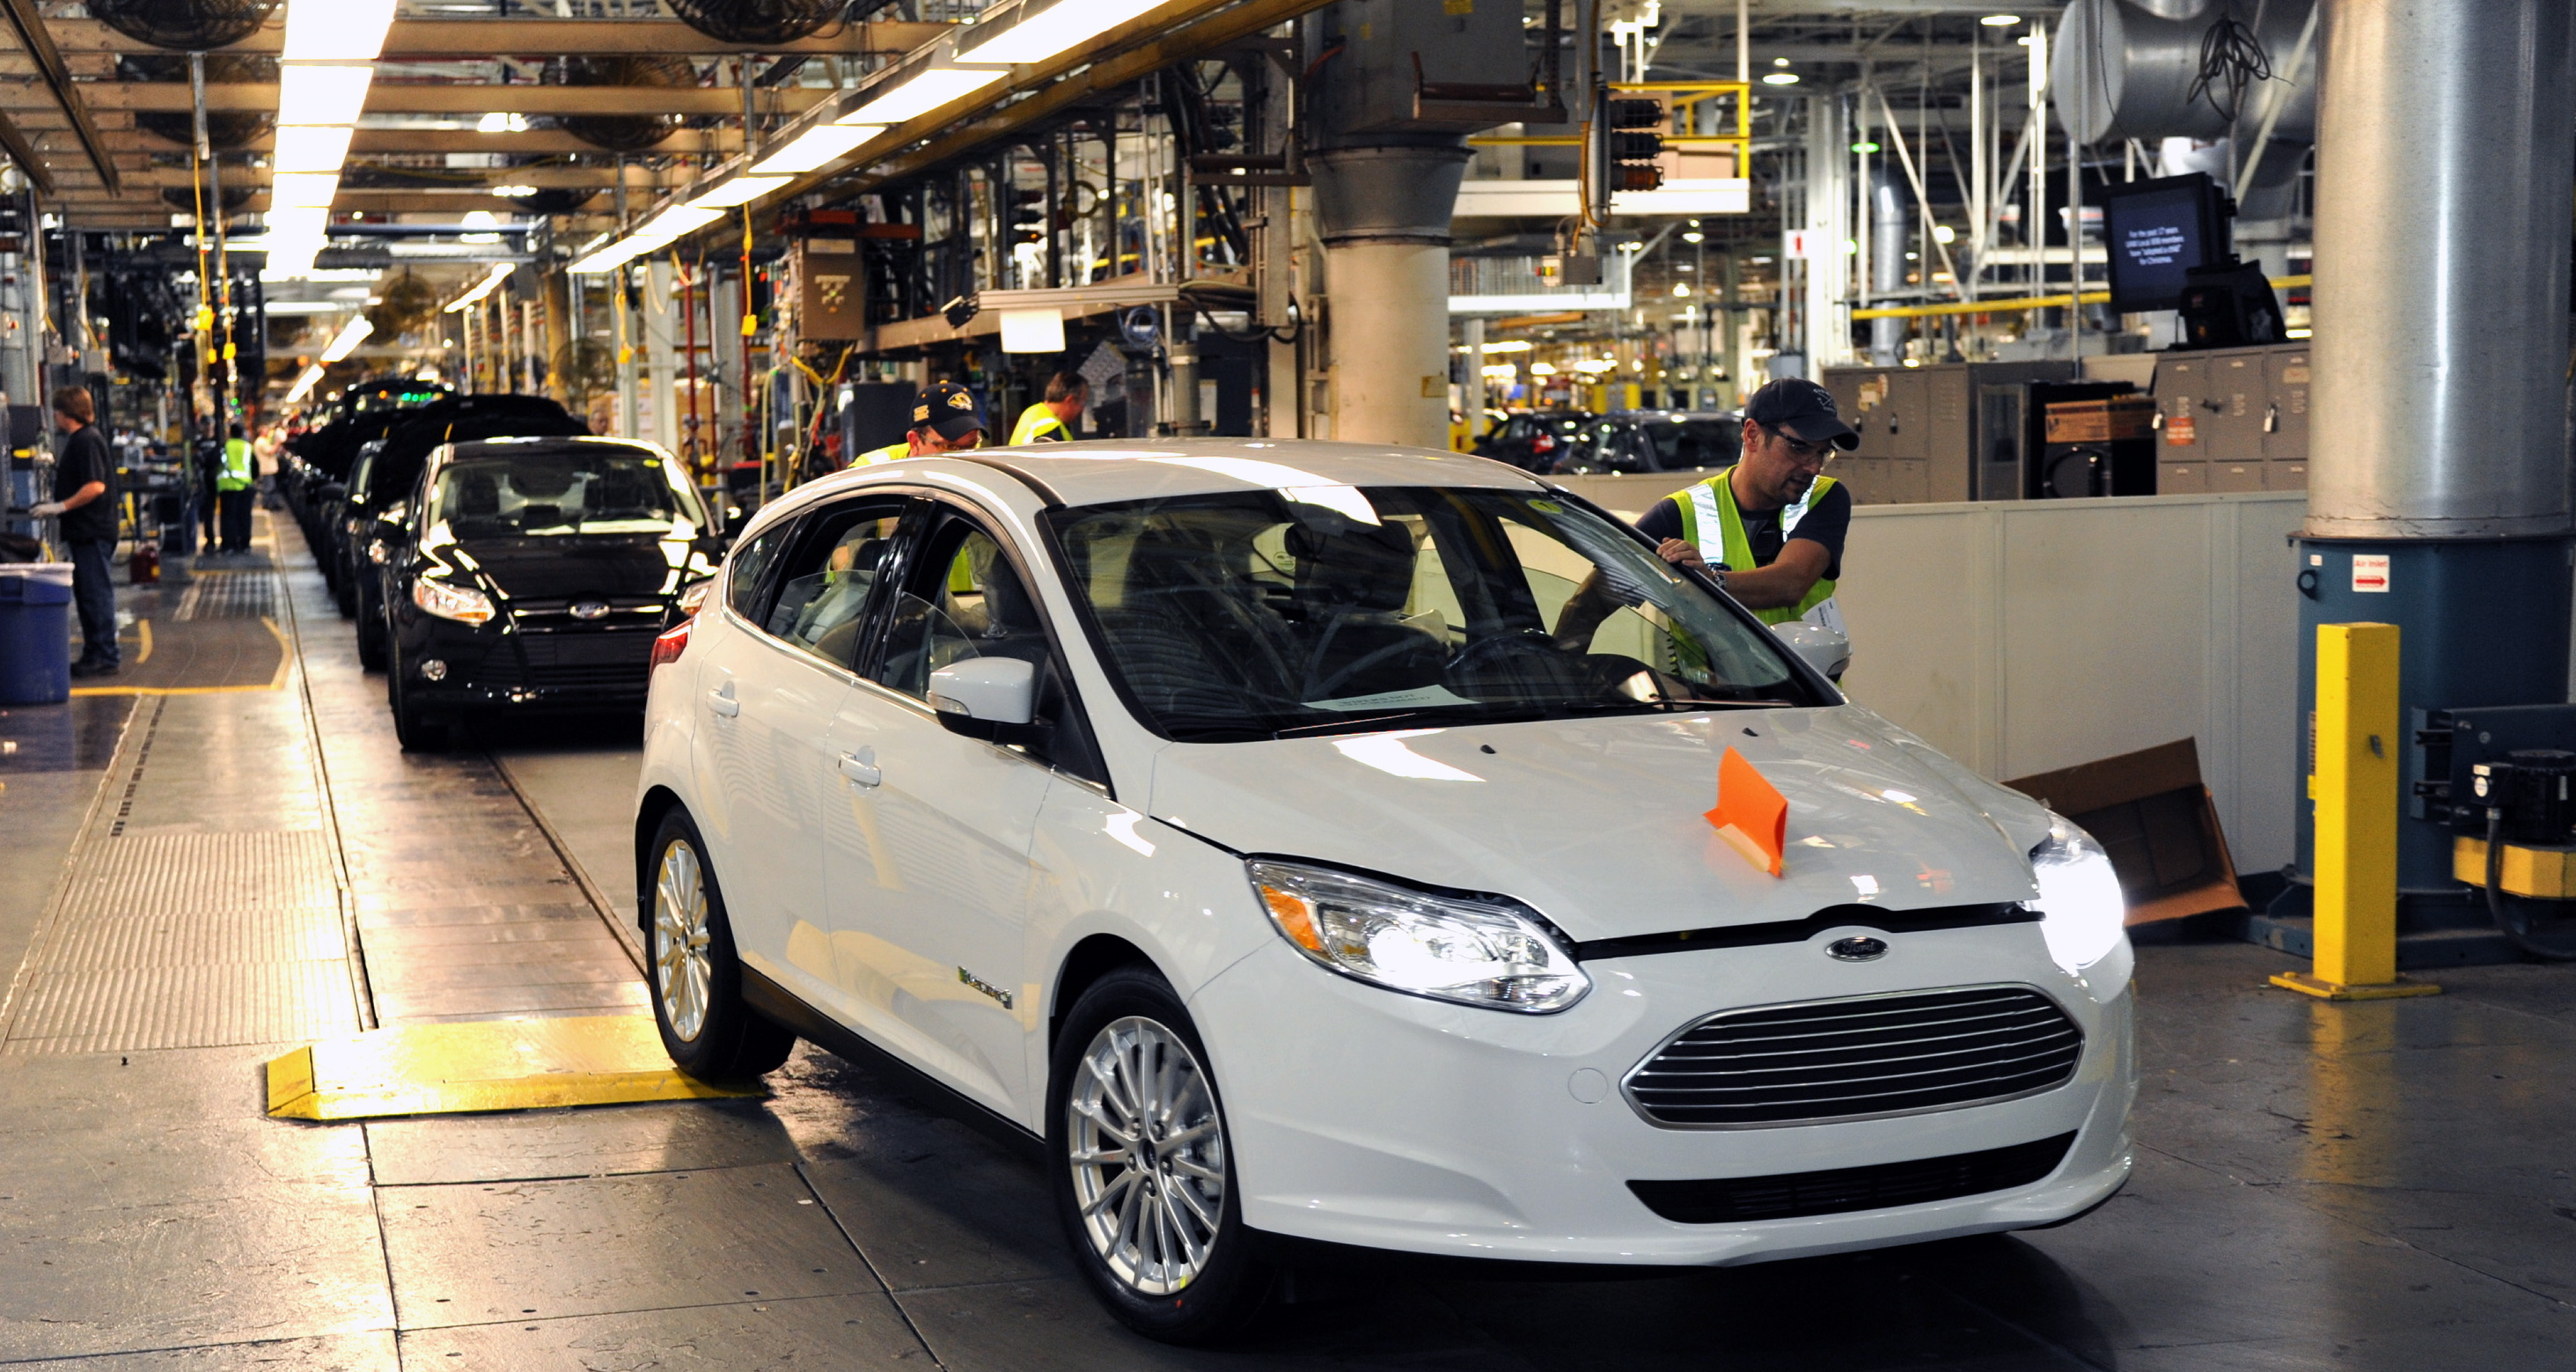 Here they come: Ford Focus Electric cars being manufactured in Michigan along with other models of the same size.